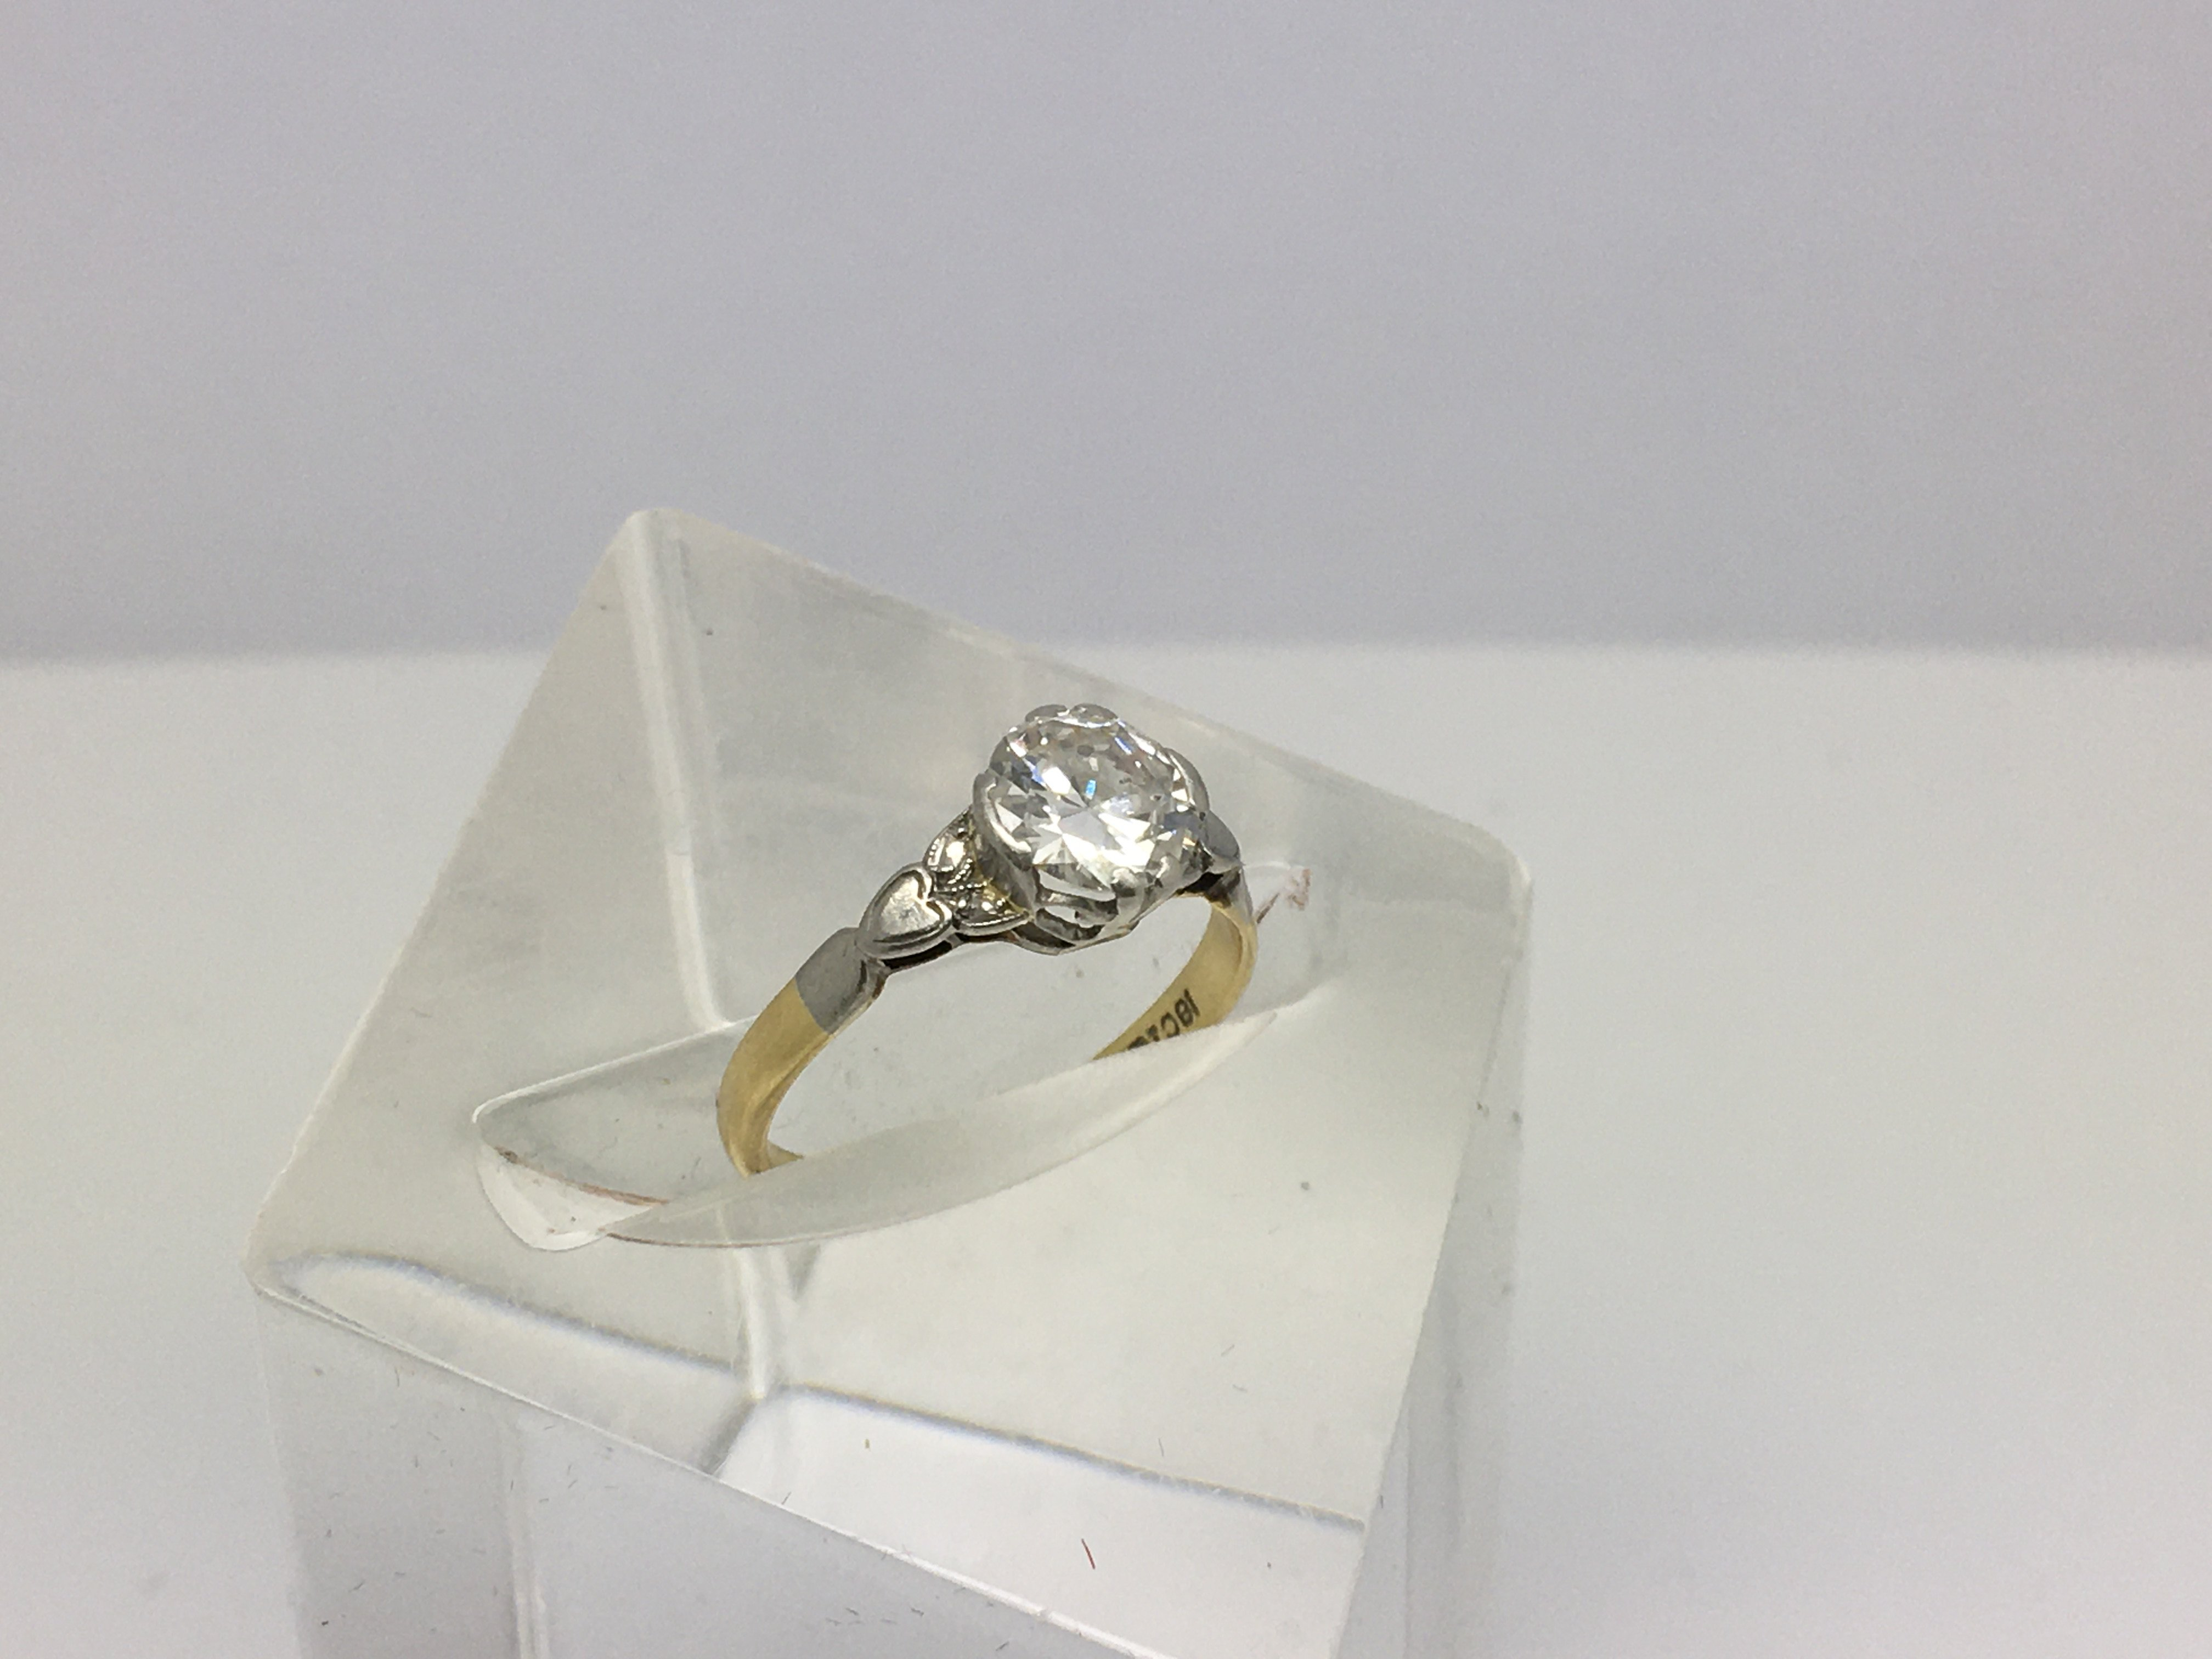 Lot 12 - An 18ct gold ring inset with a single solitaire di